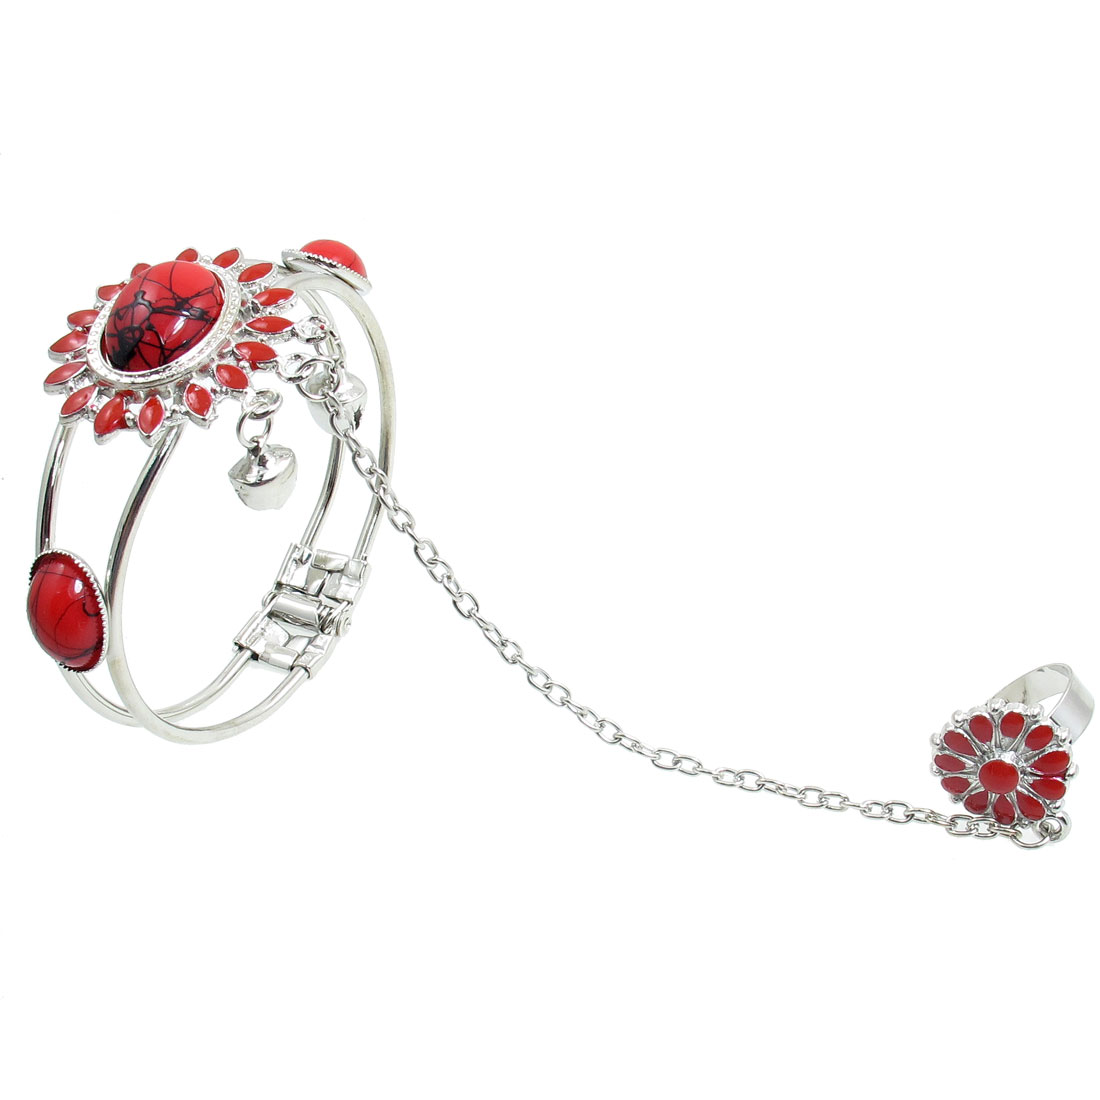 Oval Red Plastic Beads Metal Chain Finger Ring Bracelet for Ladies